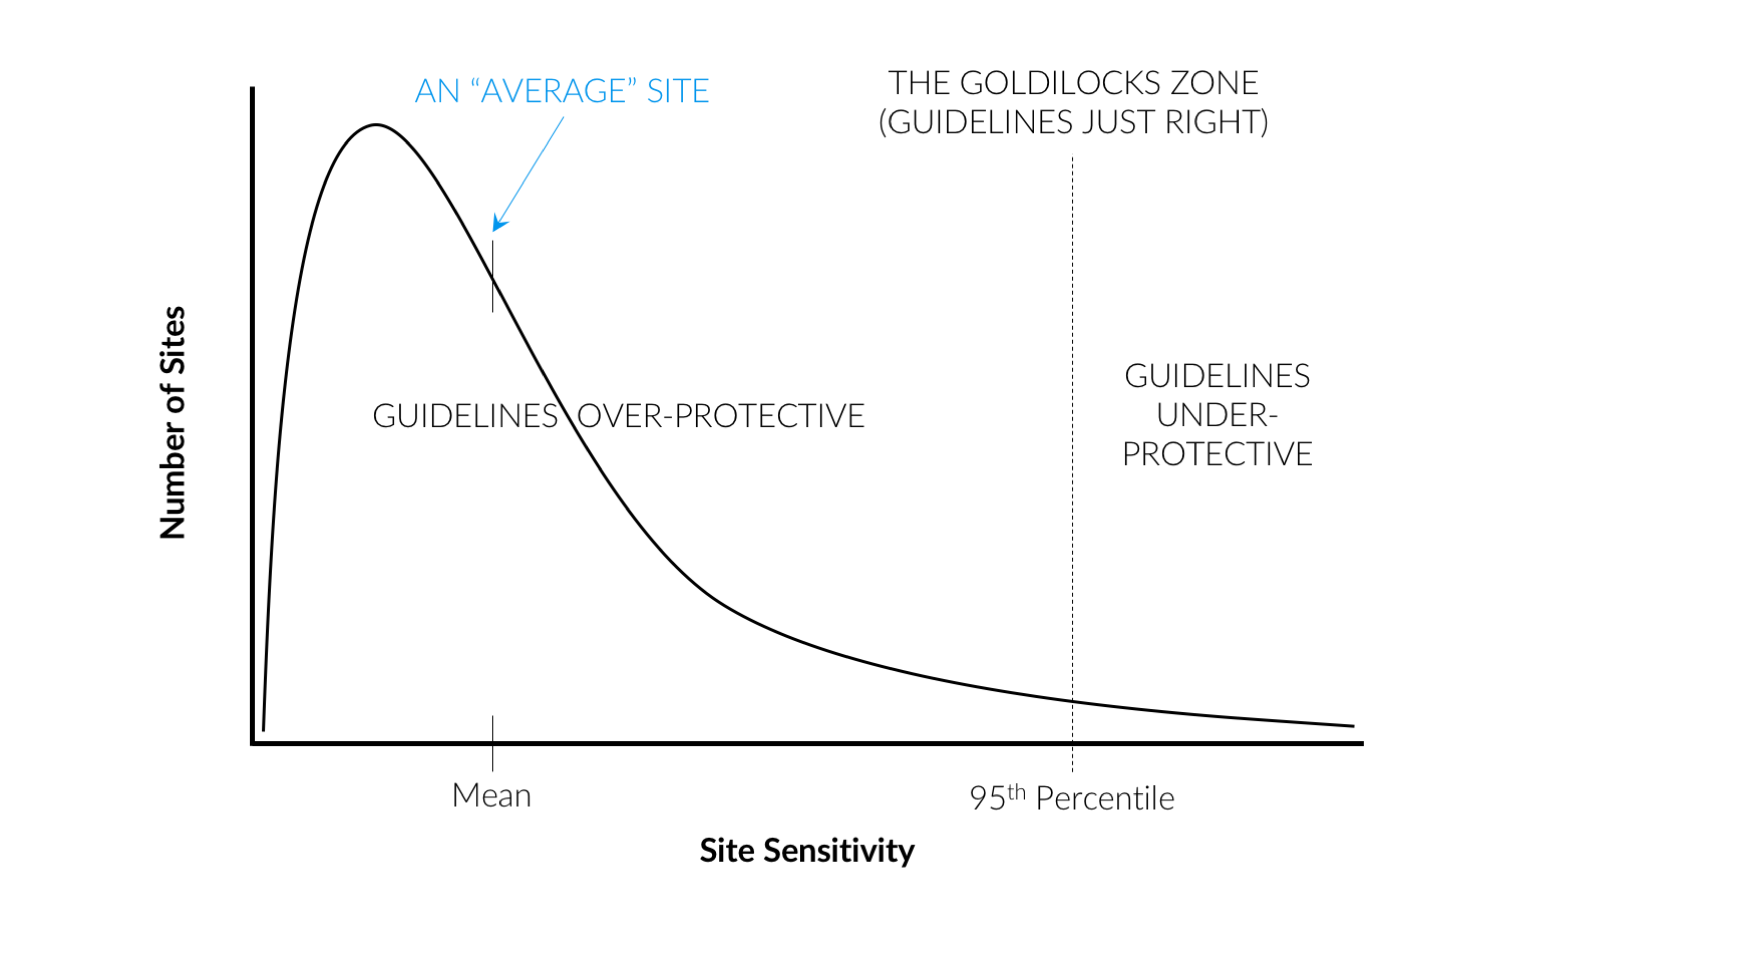 Guidelines are over-protective of many, if not most contaminated sites.